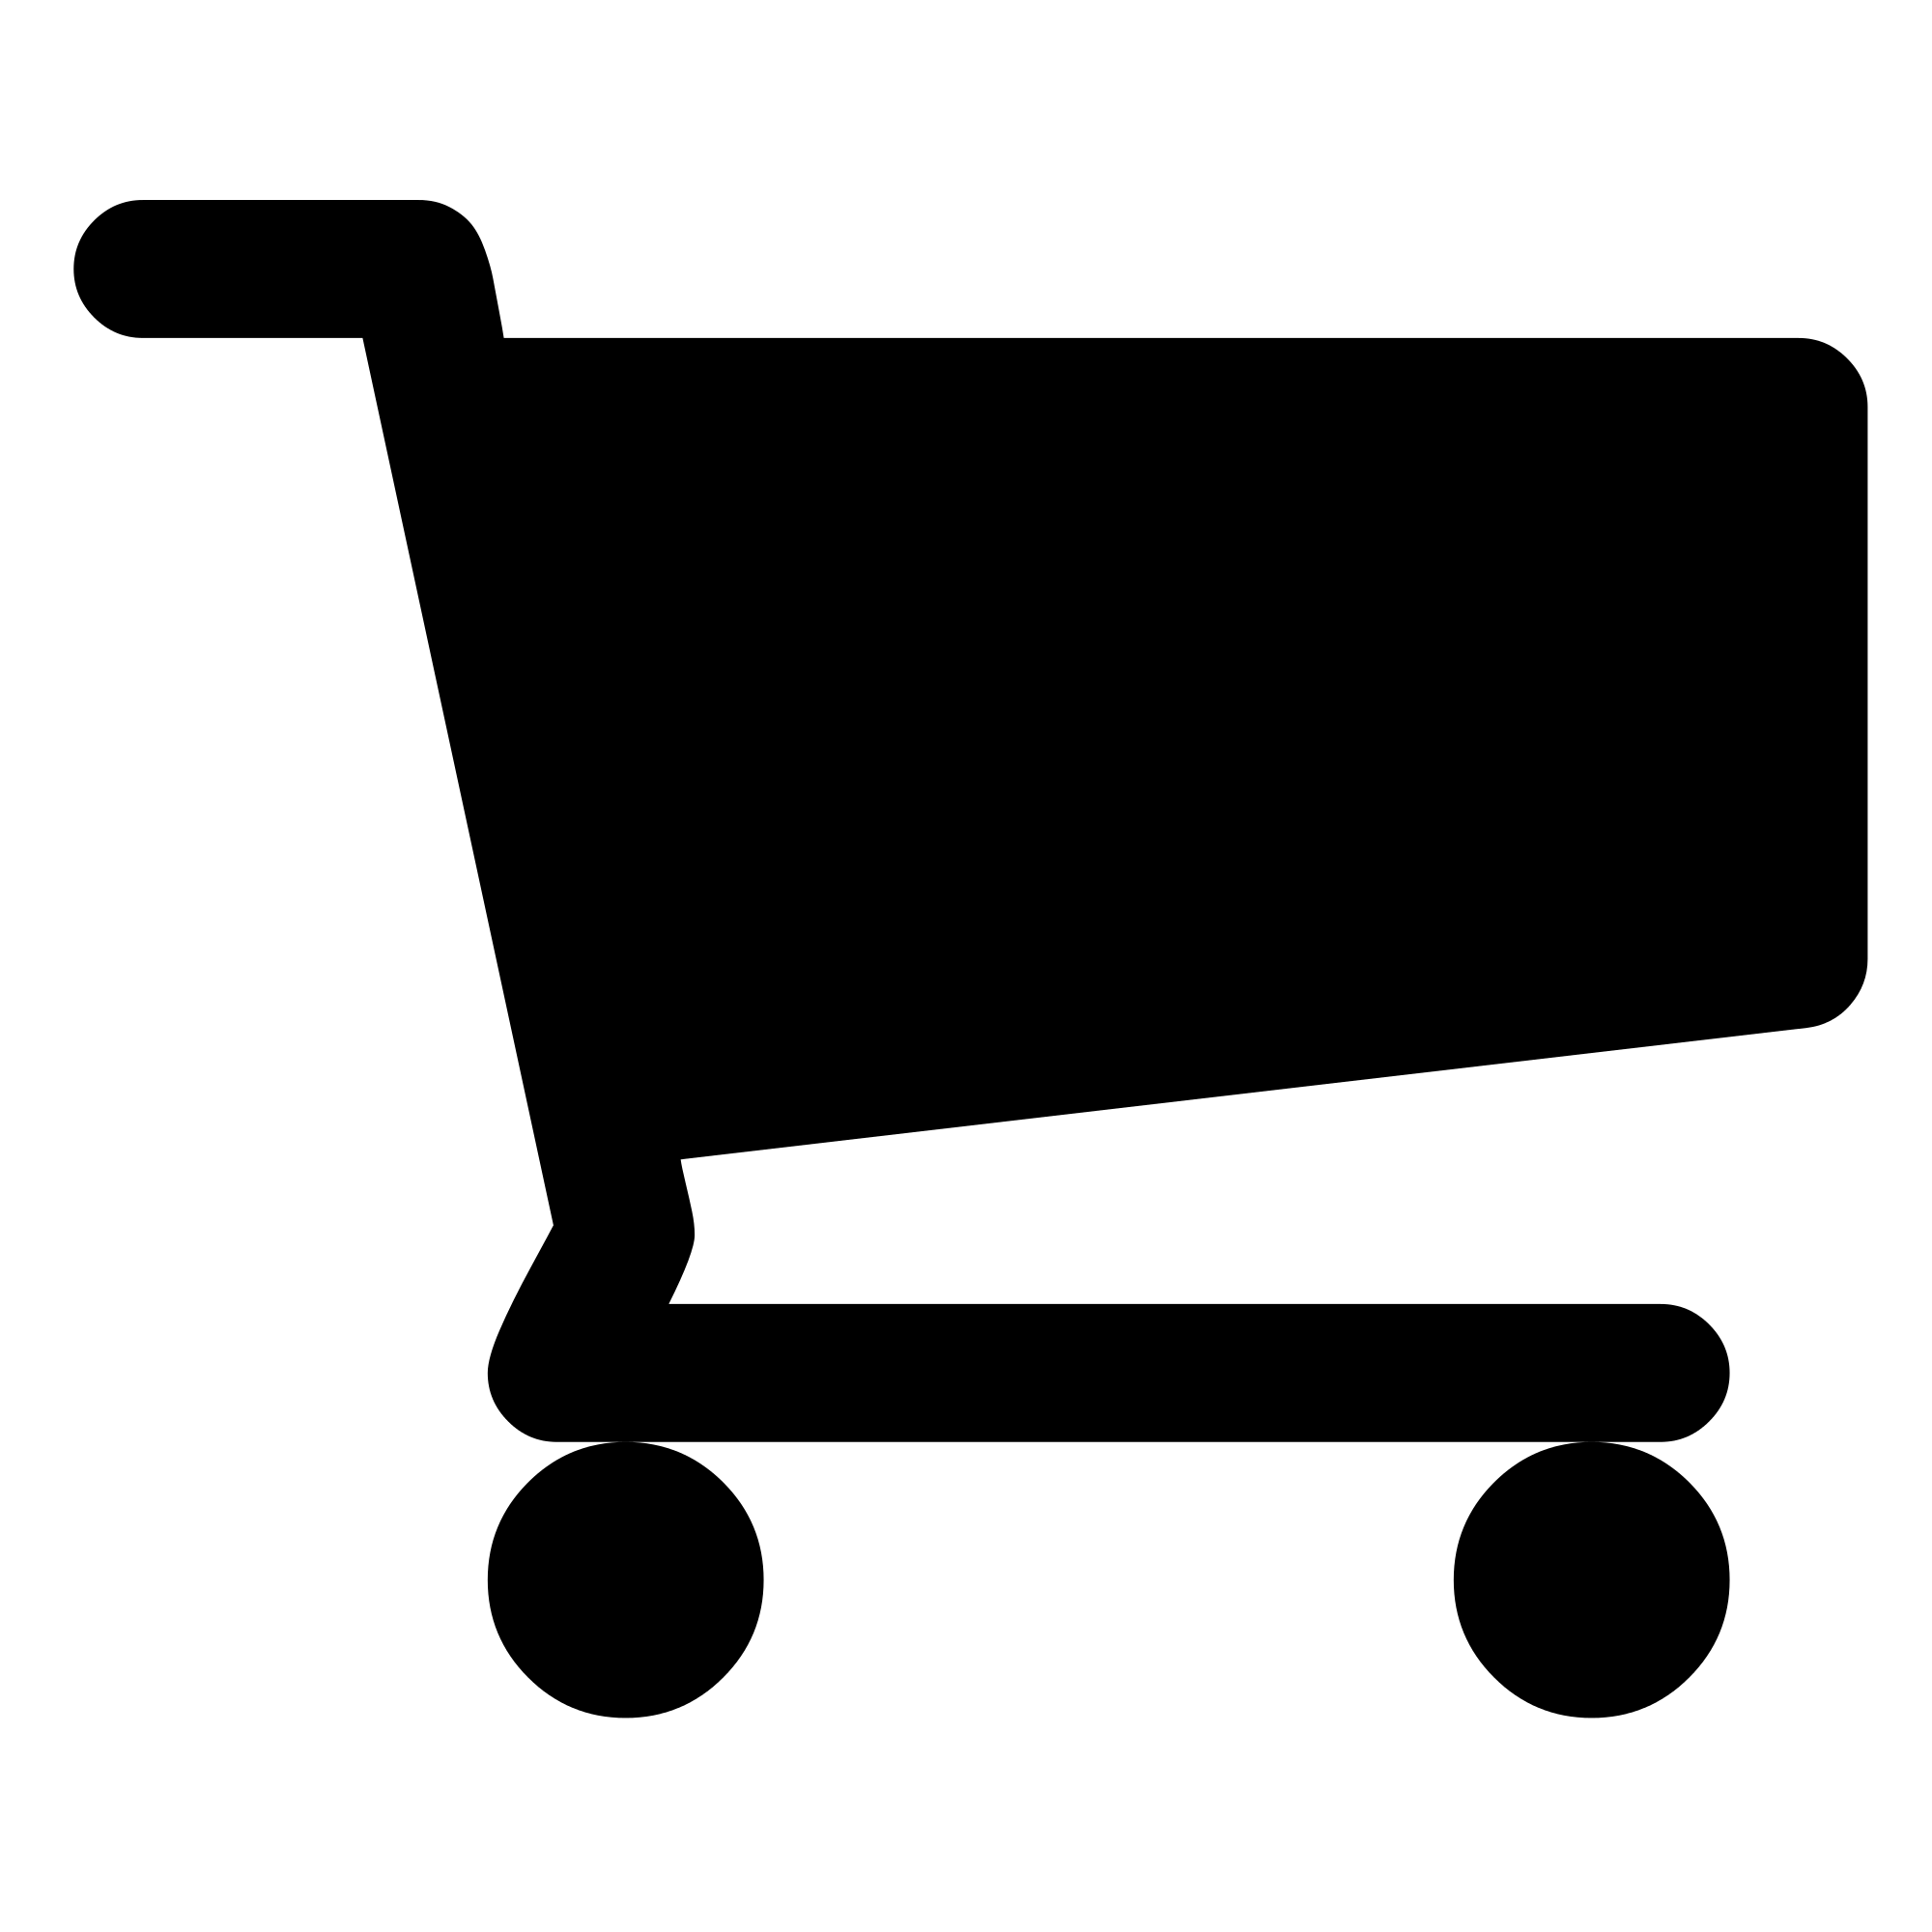 Open Hdpng.com  - Sony, Transparent background PNG HD thumbnail